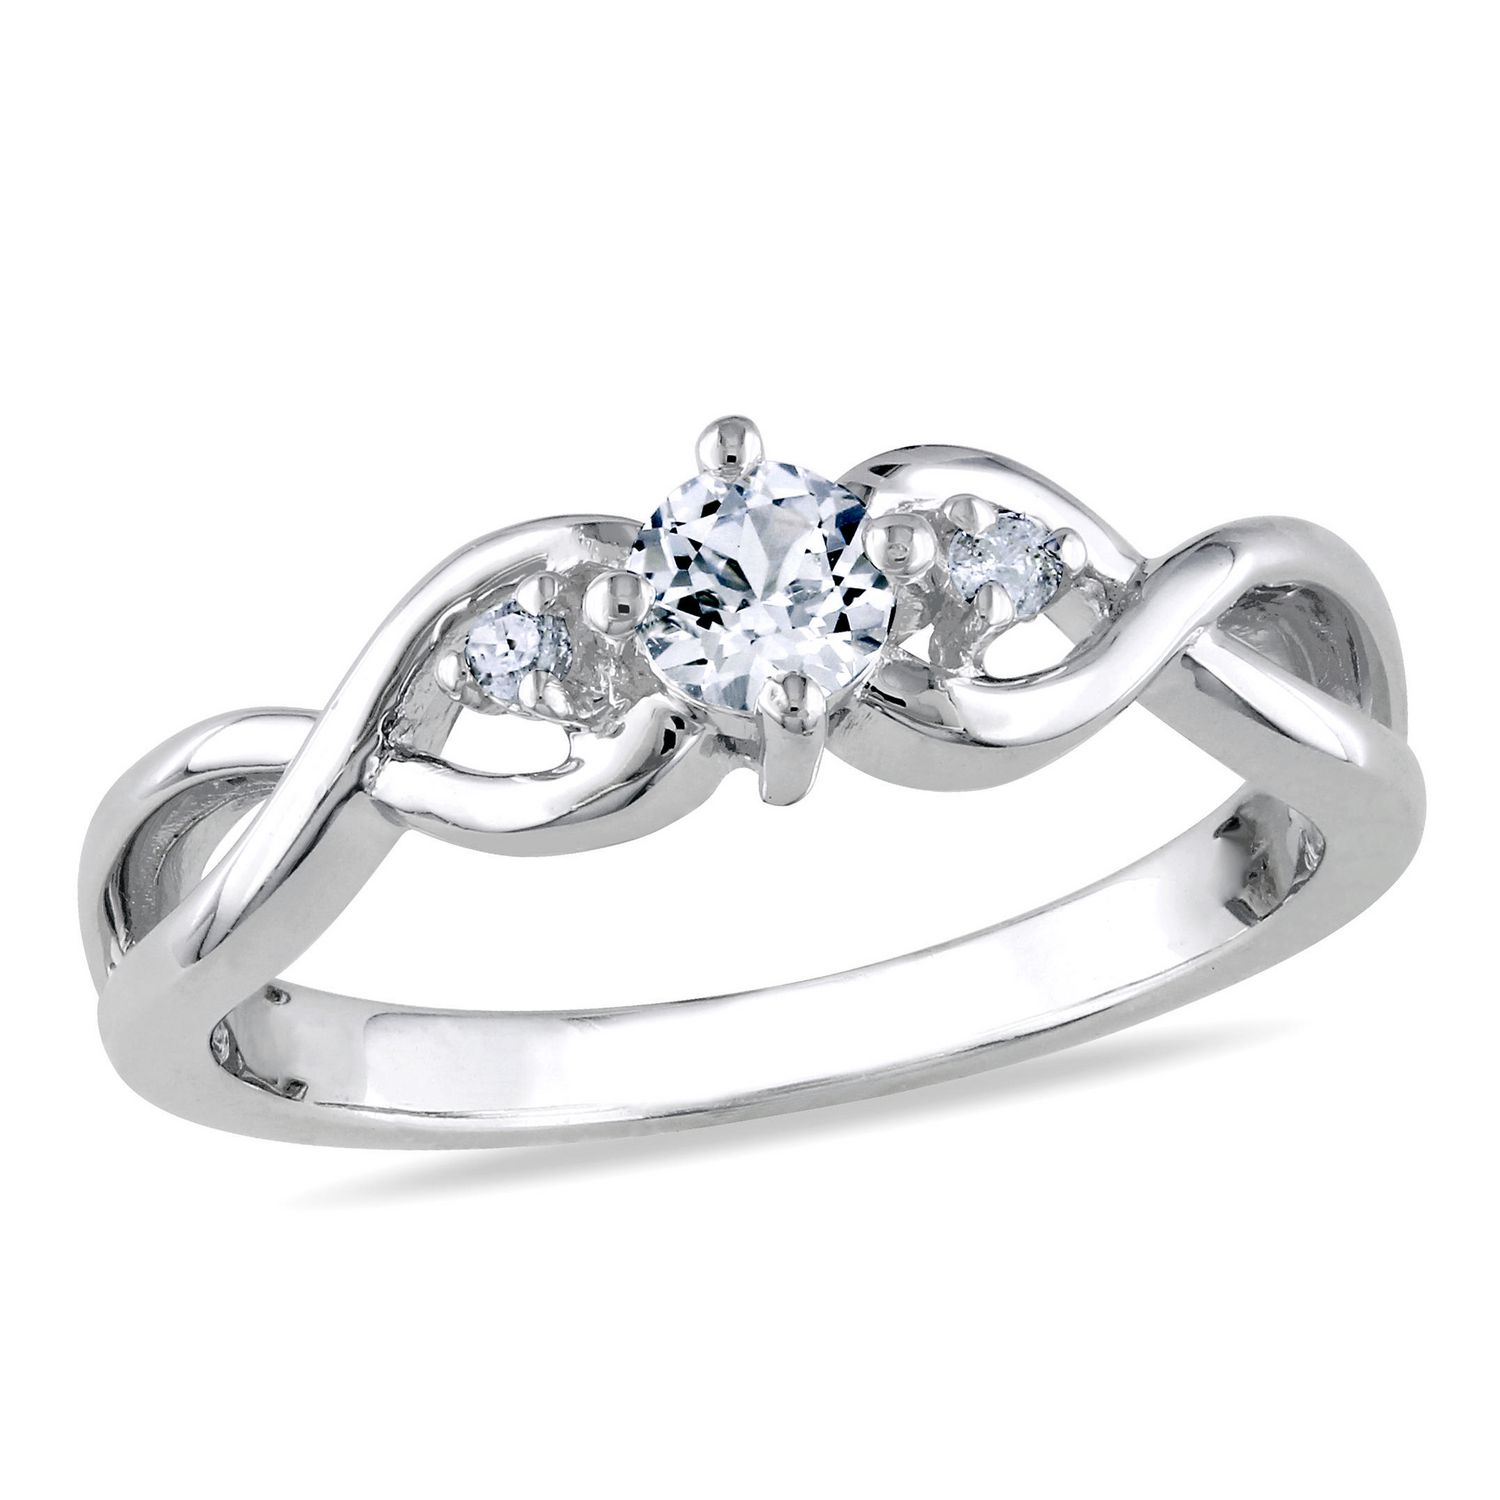 white free created sterling sapphire h product ring shipping today i watches and stone silver overstock promise jewelry solitaire diamond infinity miadora